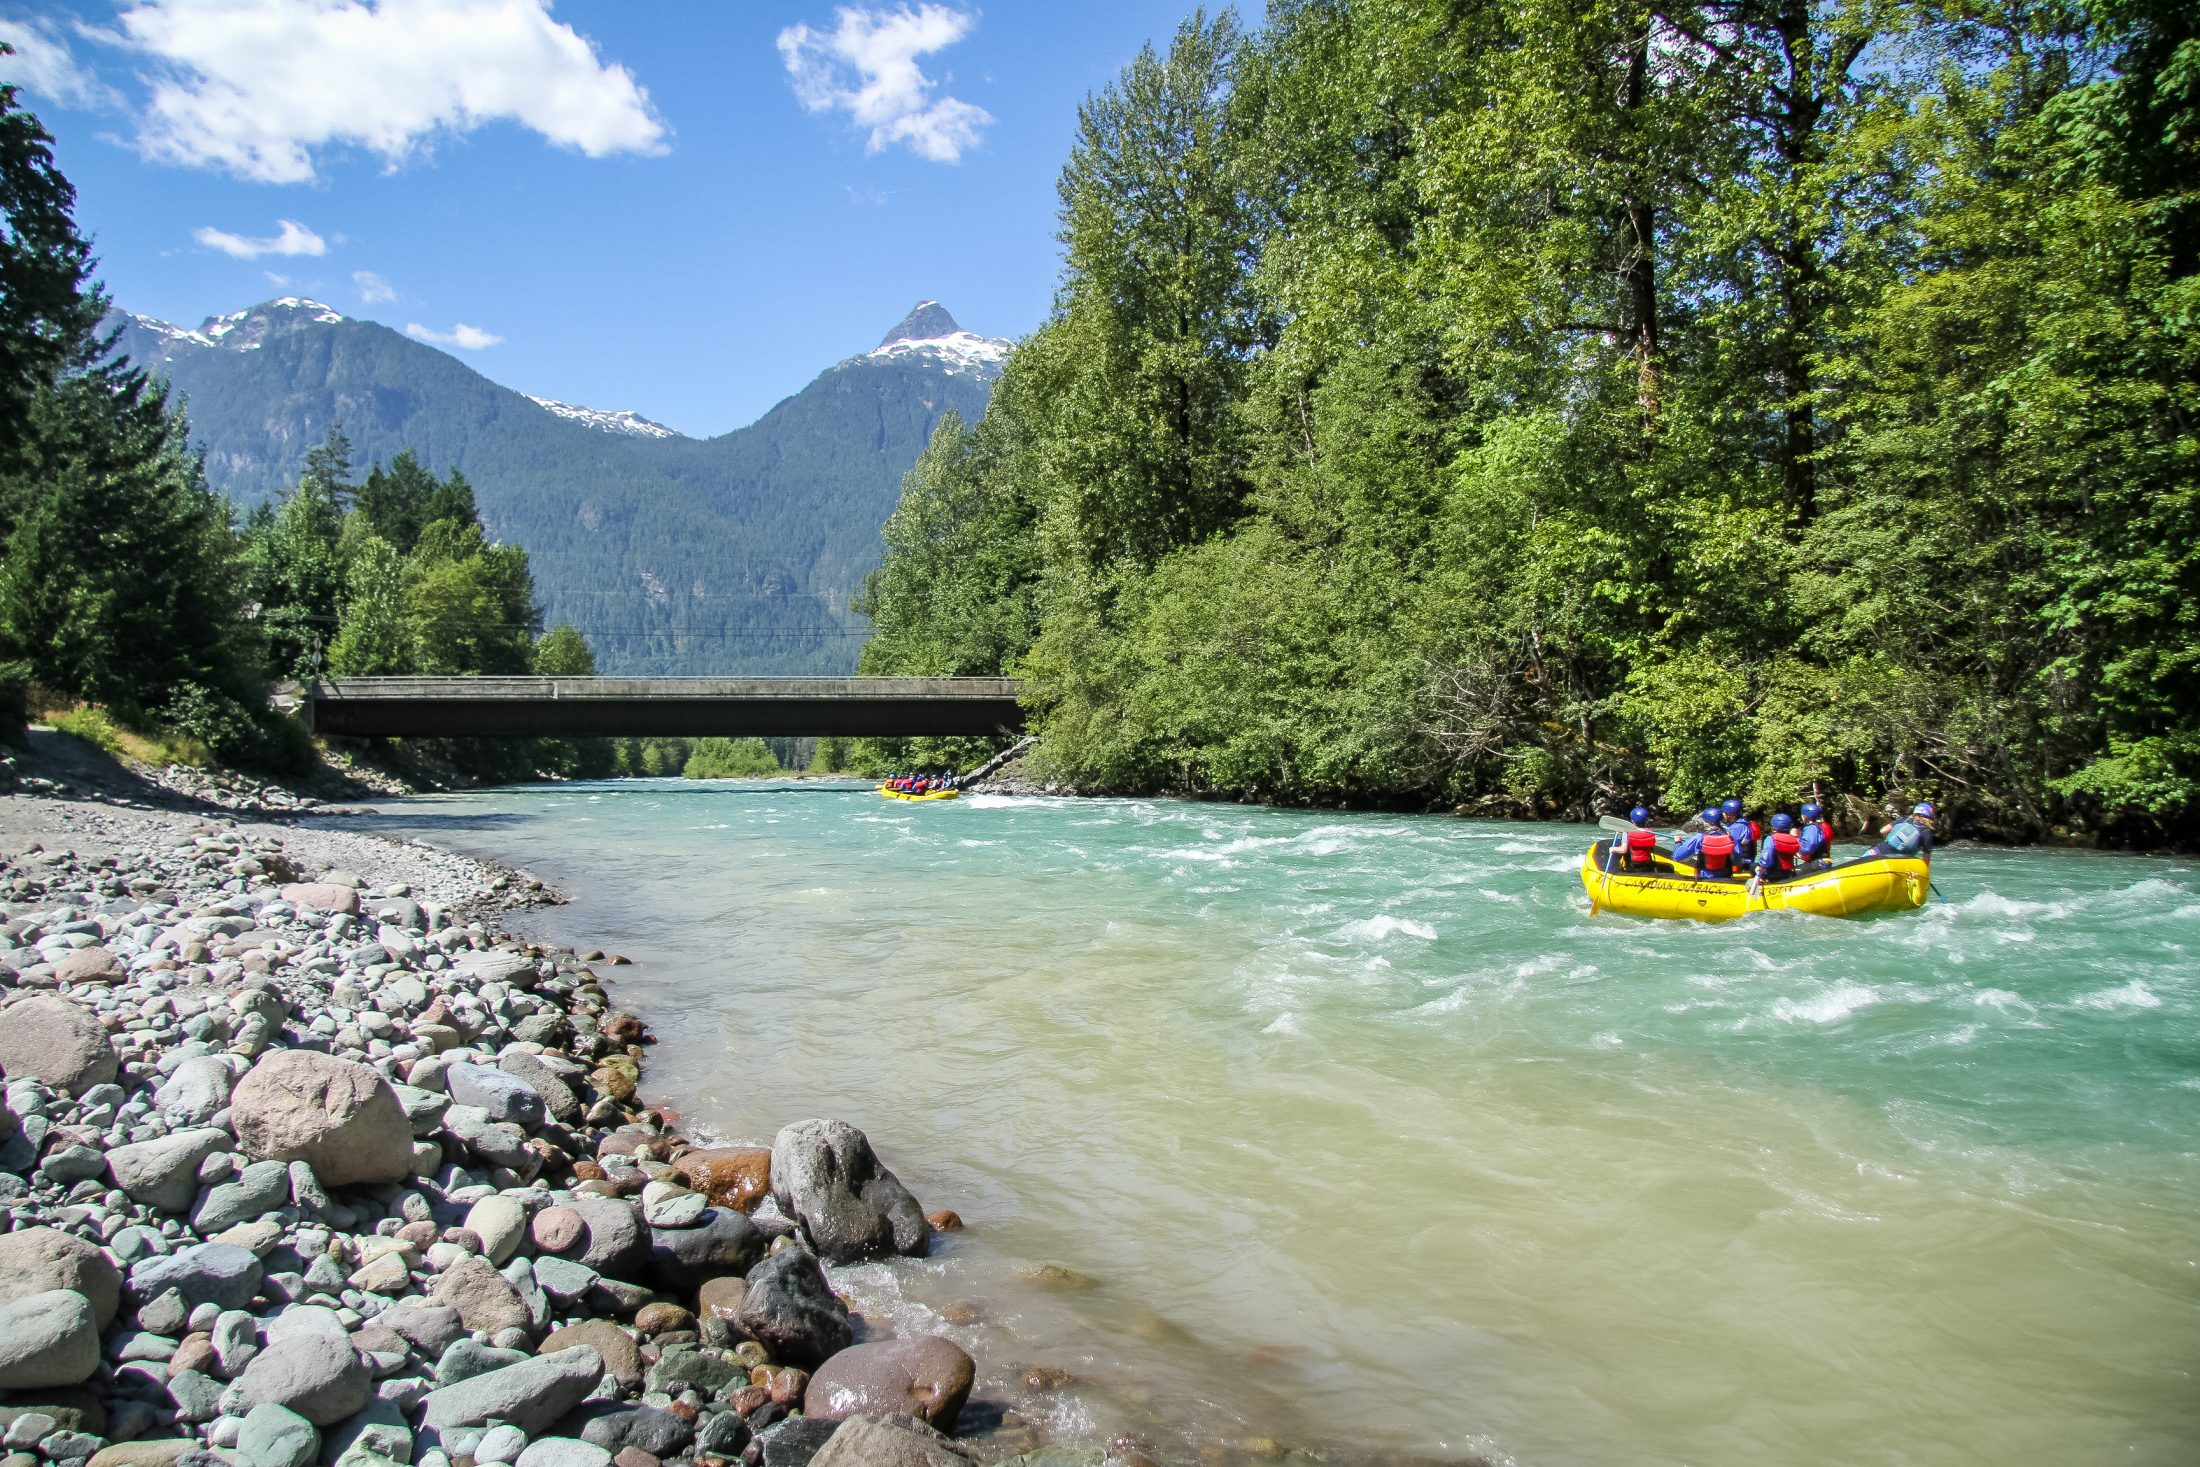 A Group Rafting On A Blue River In Squamish, British Columbia